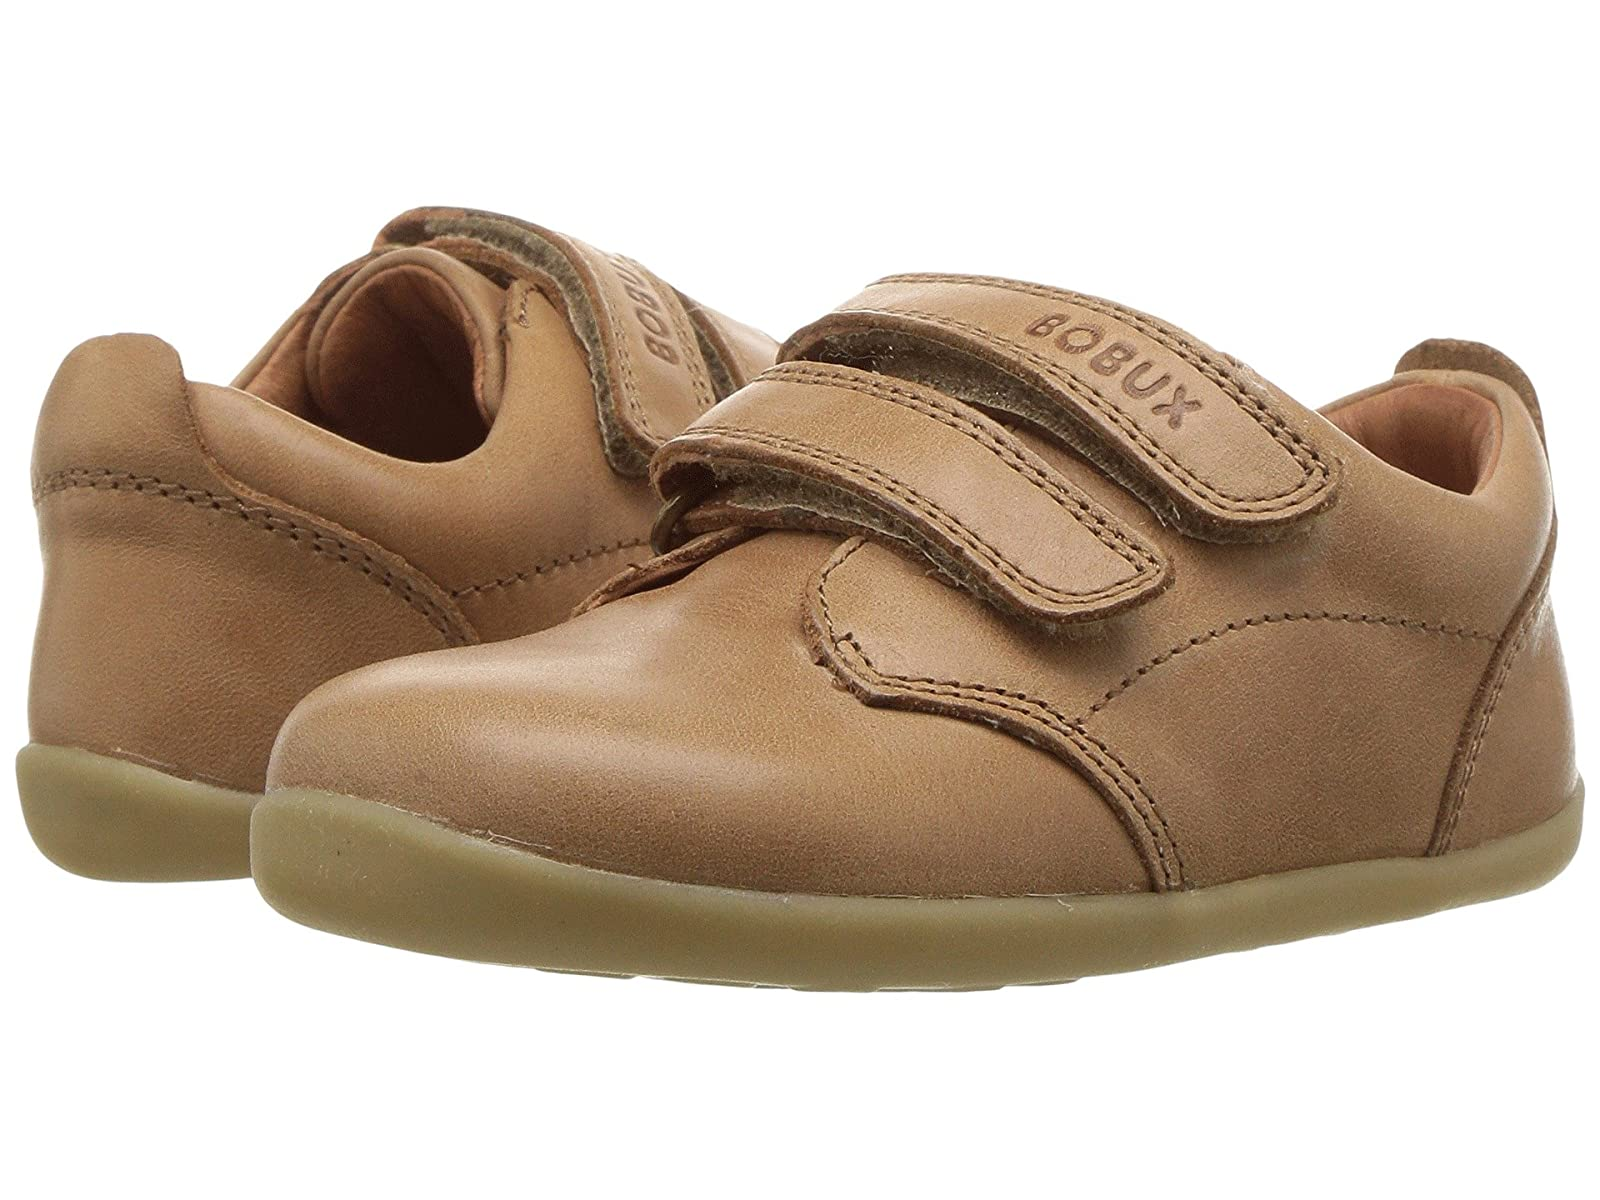 Bobux Kids Step UP Classic Swap (Infant/Toddler)Atmospheric grades have affordable shoes